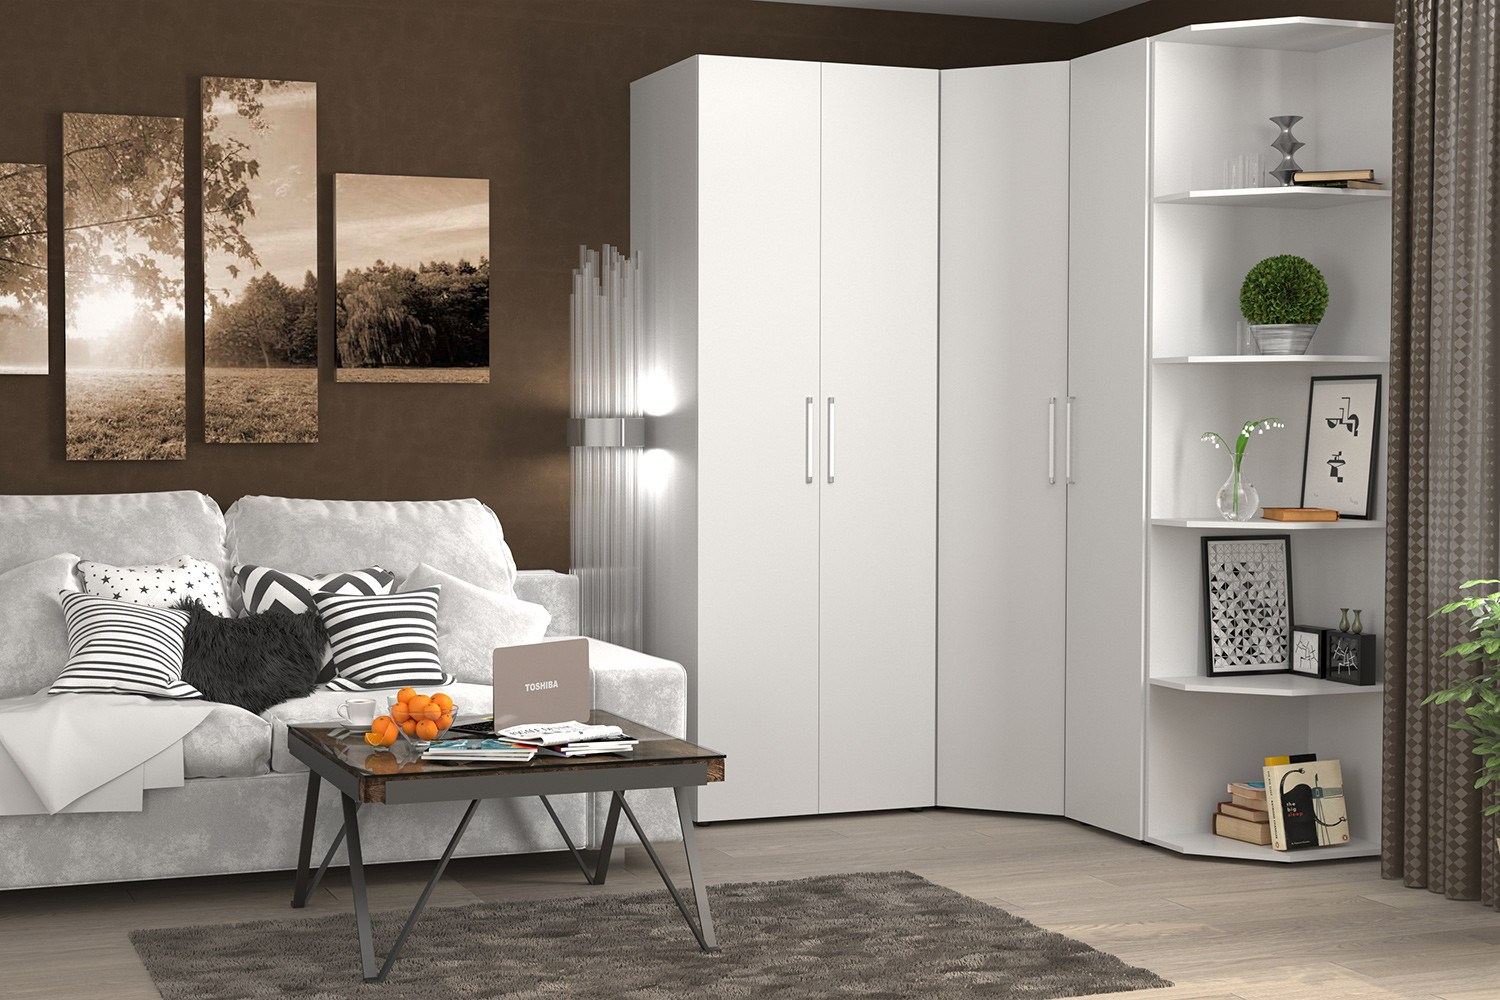 Corner Bedroom Furniture: Arranging Cozy Interior. Great looking white wardrobe for small space